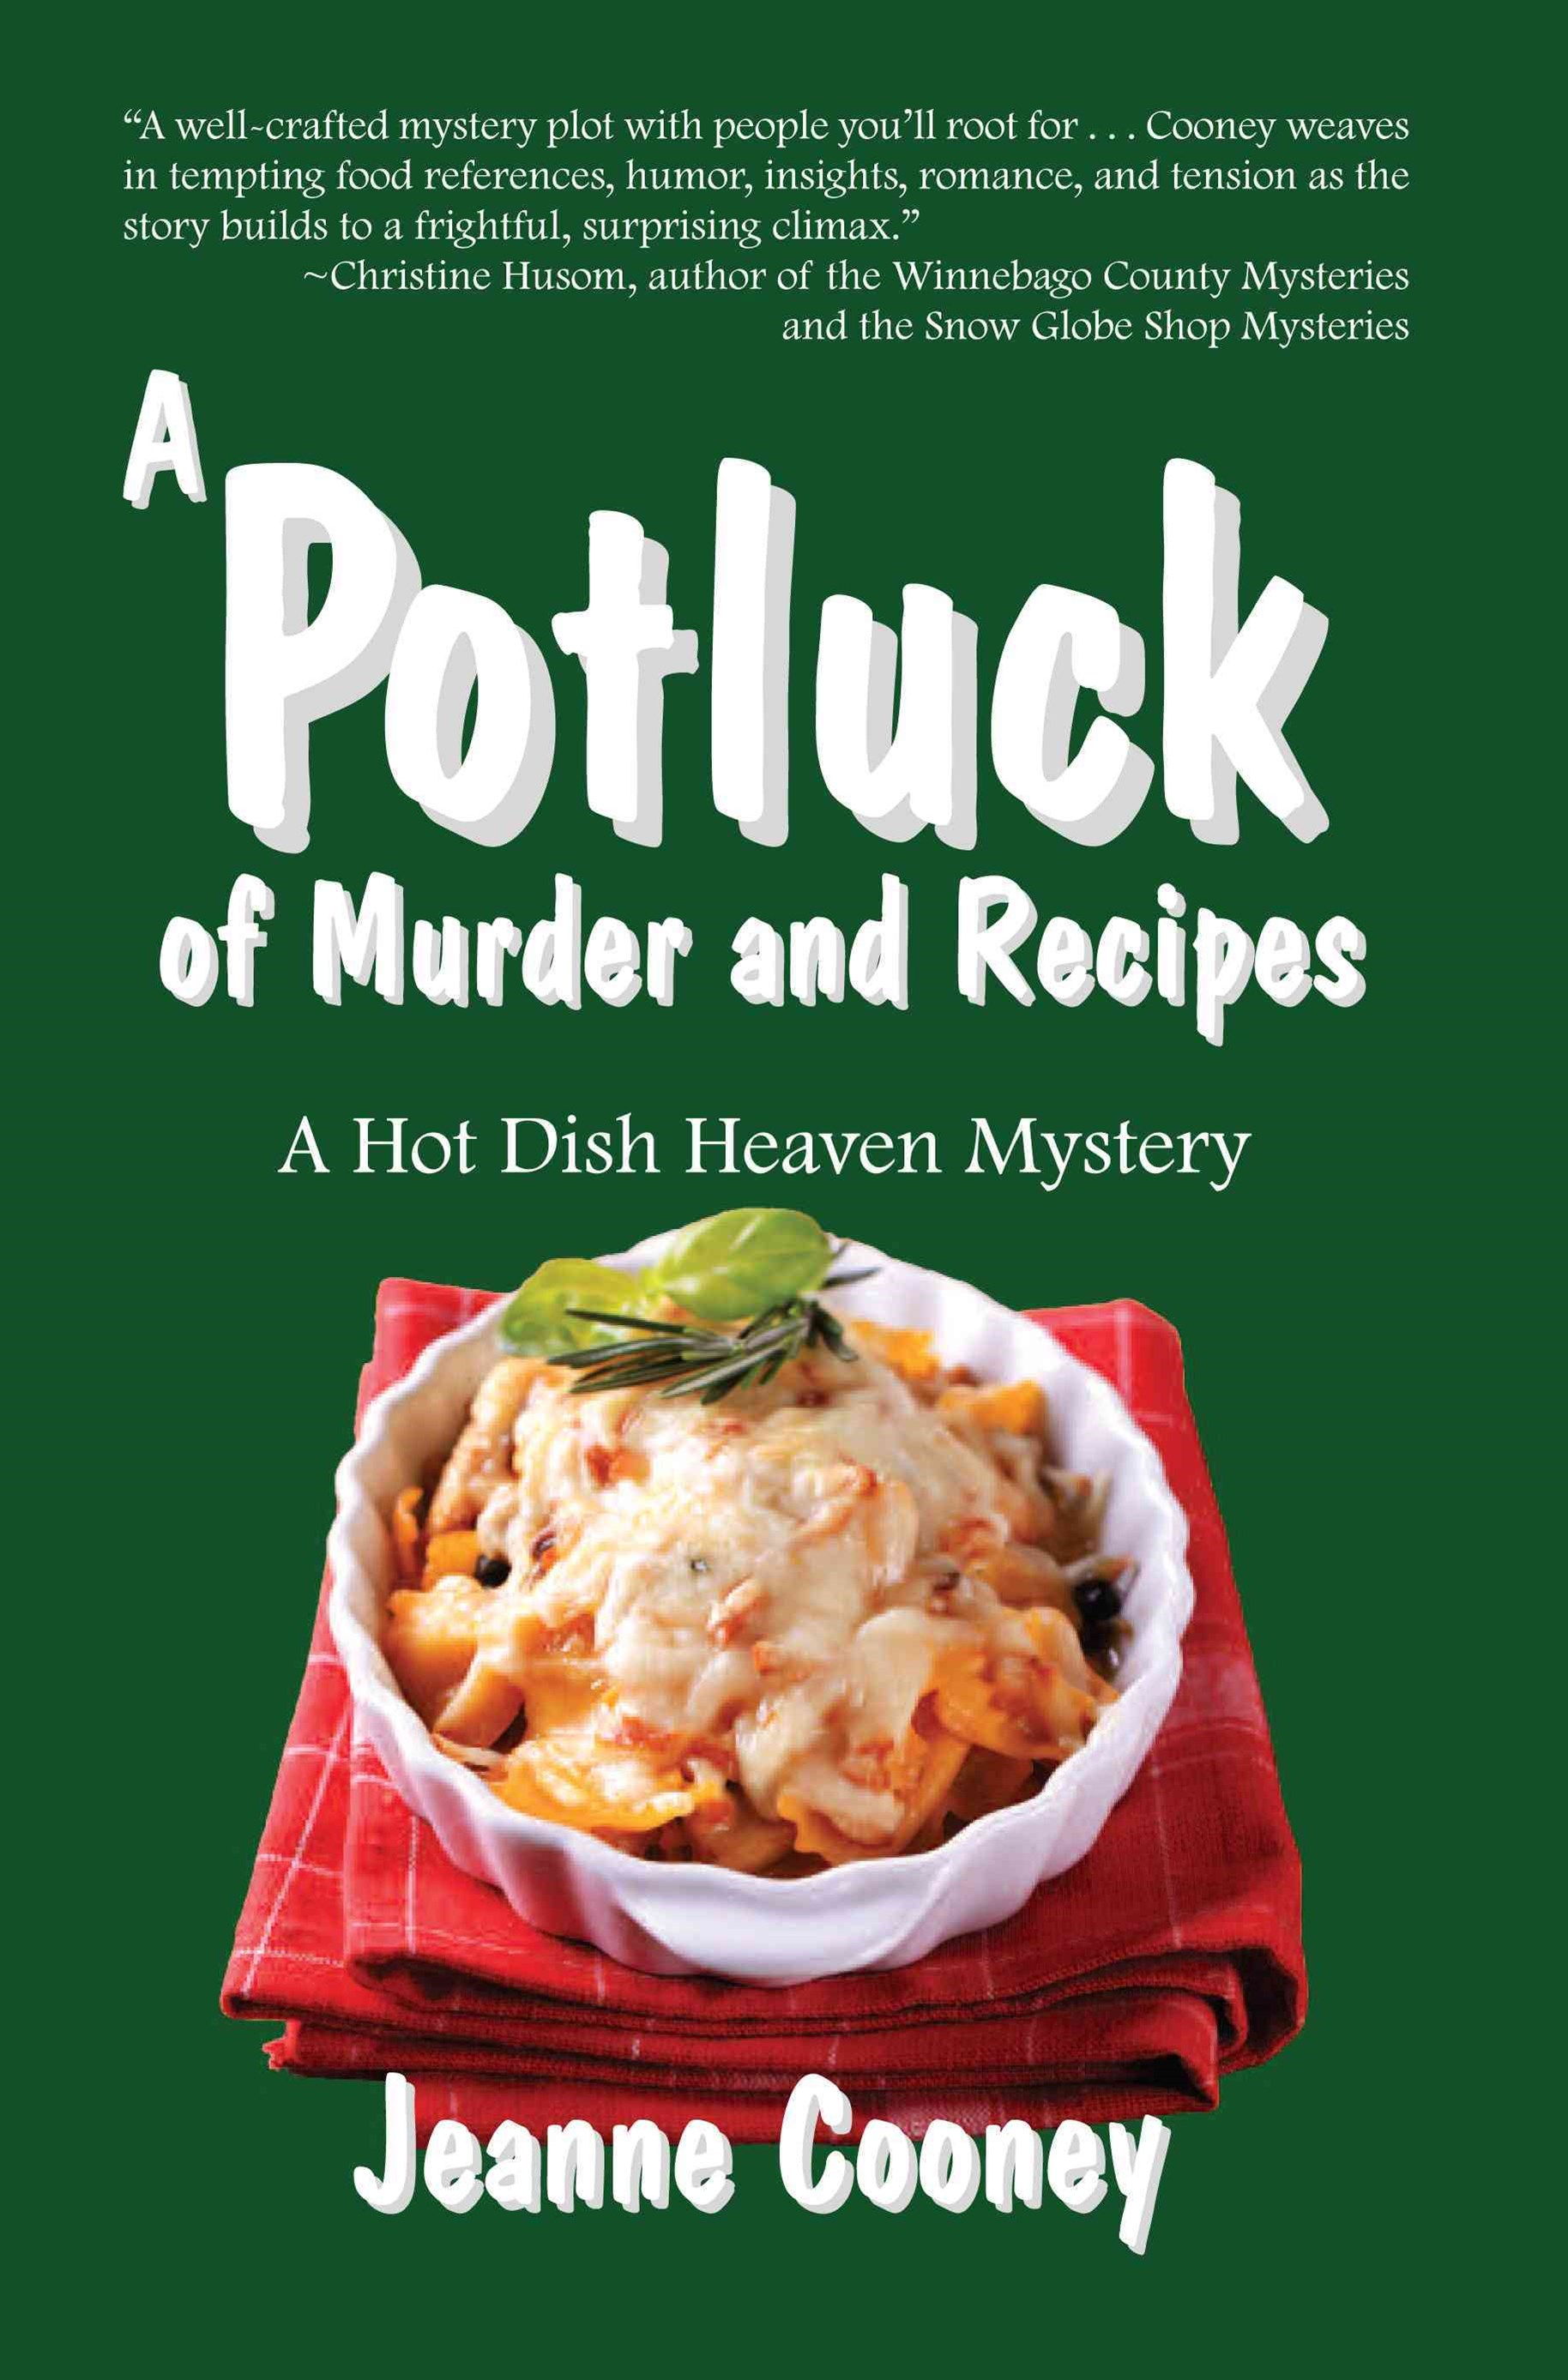 A Holiday Potluck with Murder and Recipes